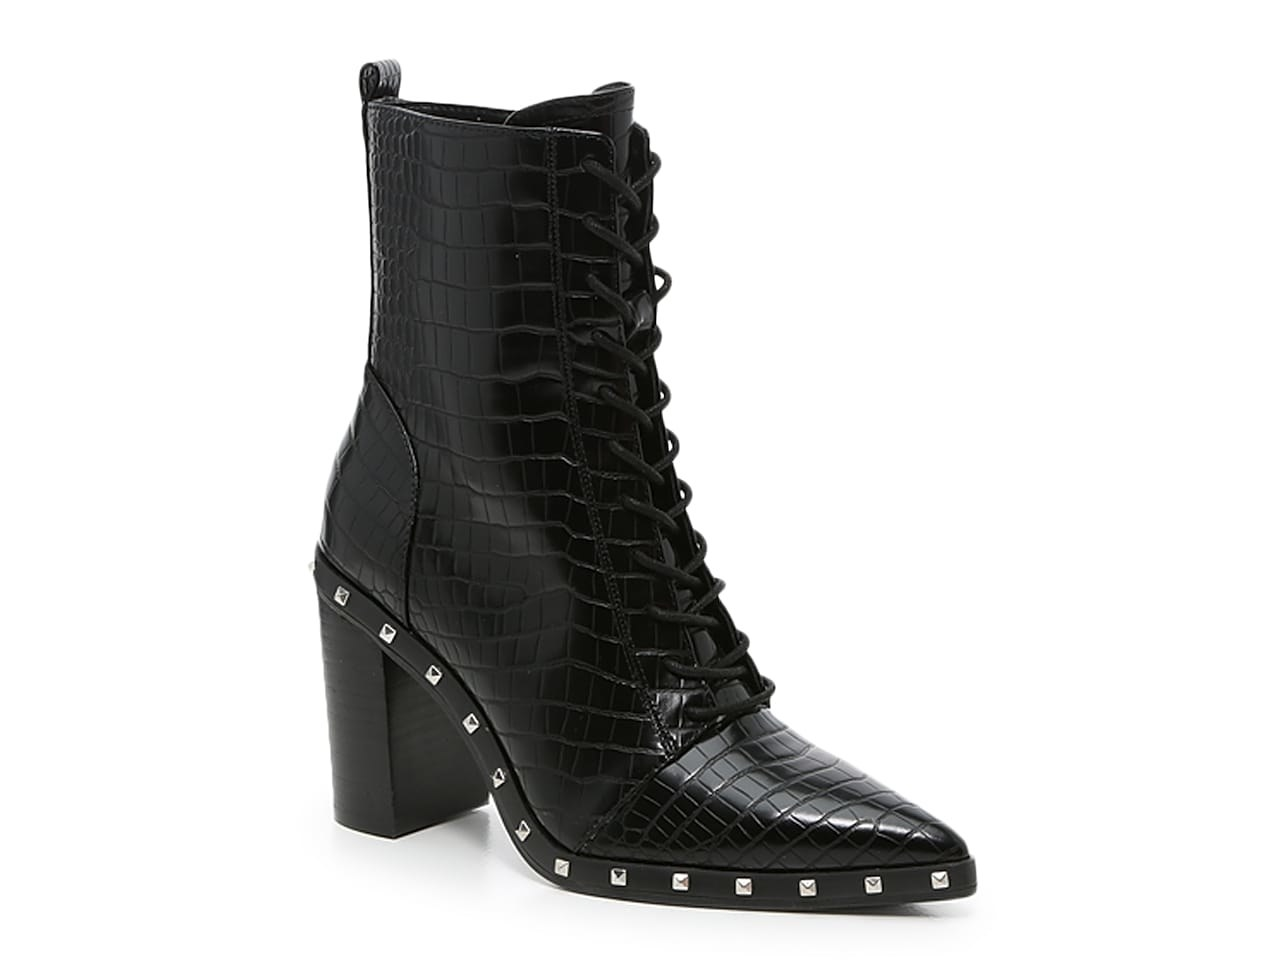 the black boots lace-up boots with rhinestone detailing